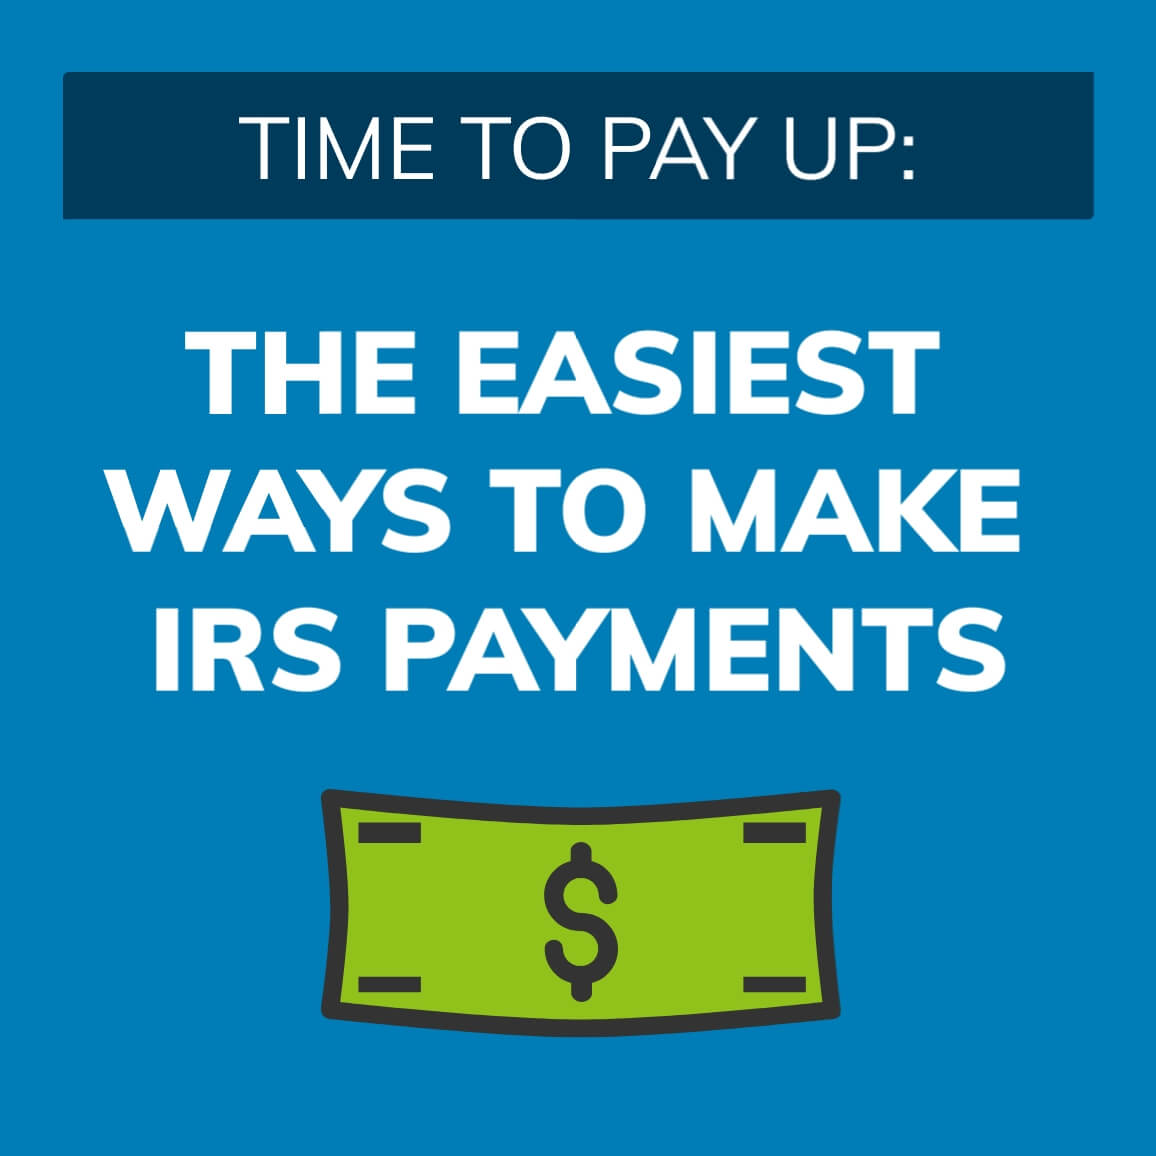 4 Ways to Make IRS Payments image